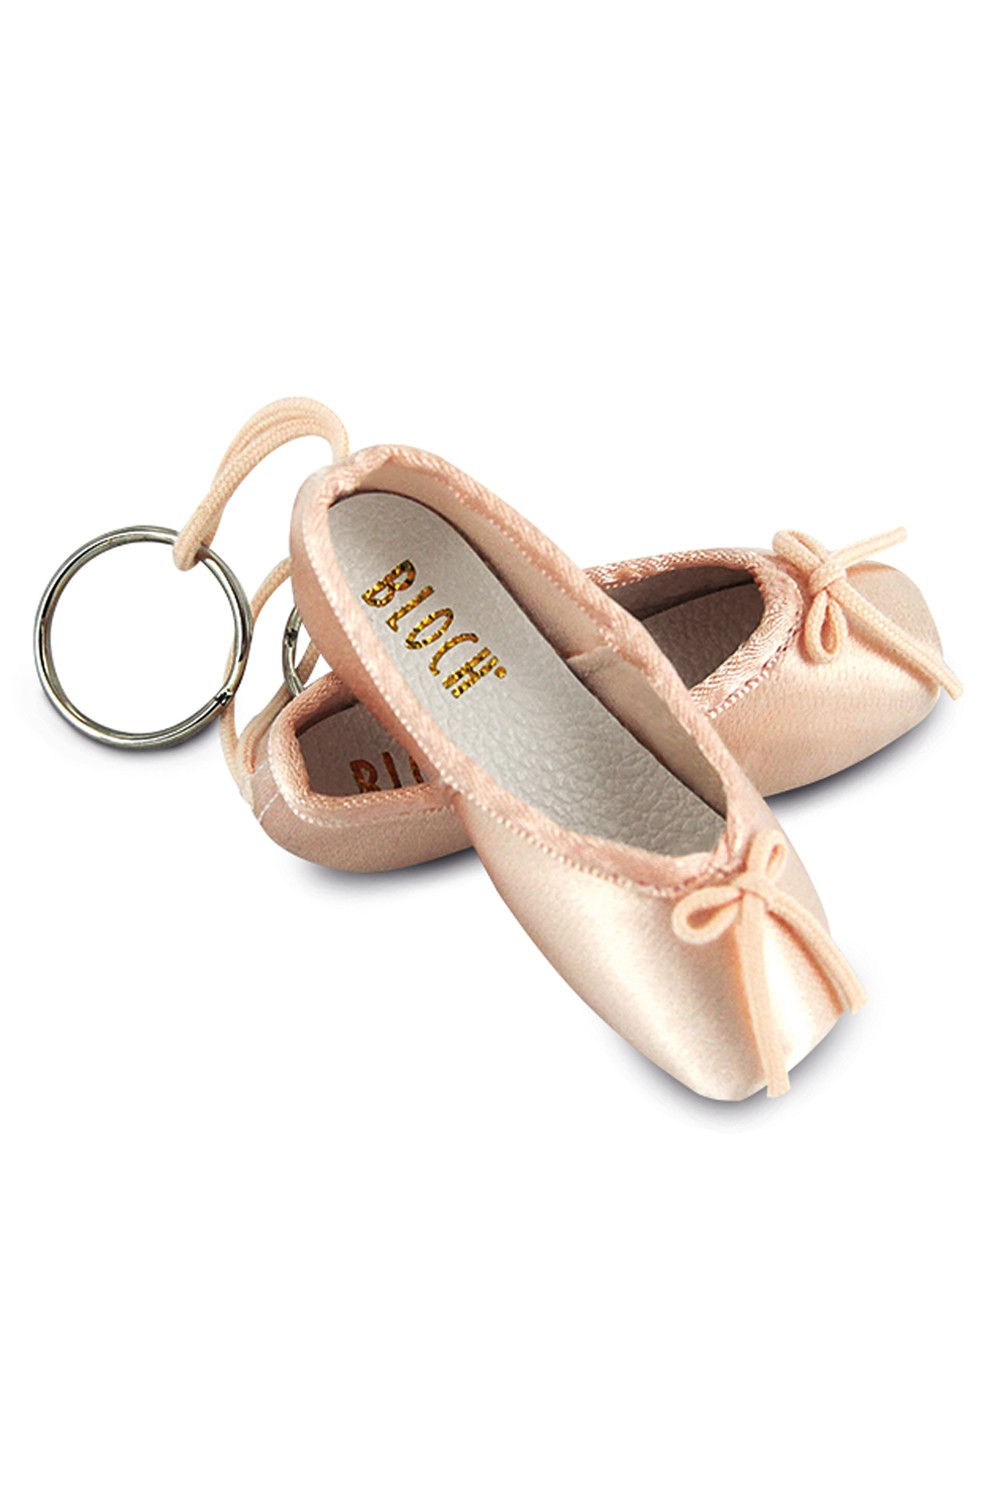 Mini Pointe Shoe Keychain Dance Shoes Accessories